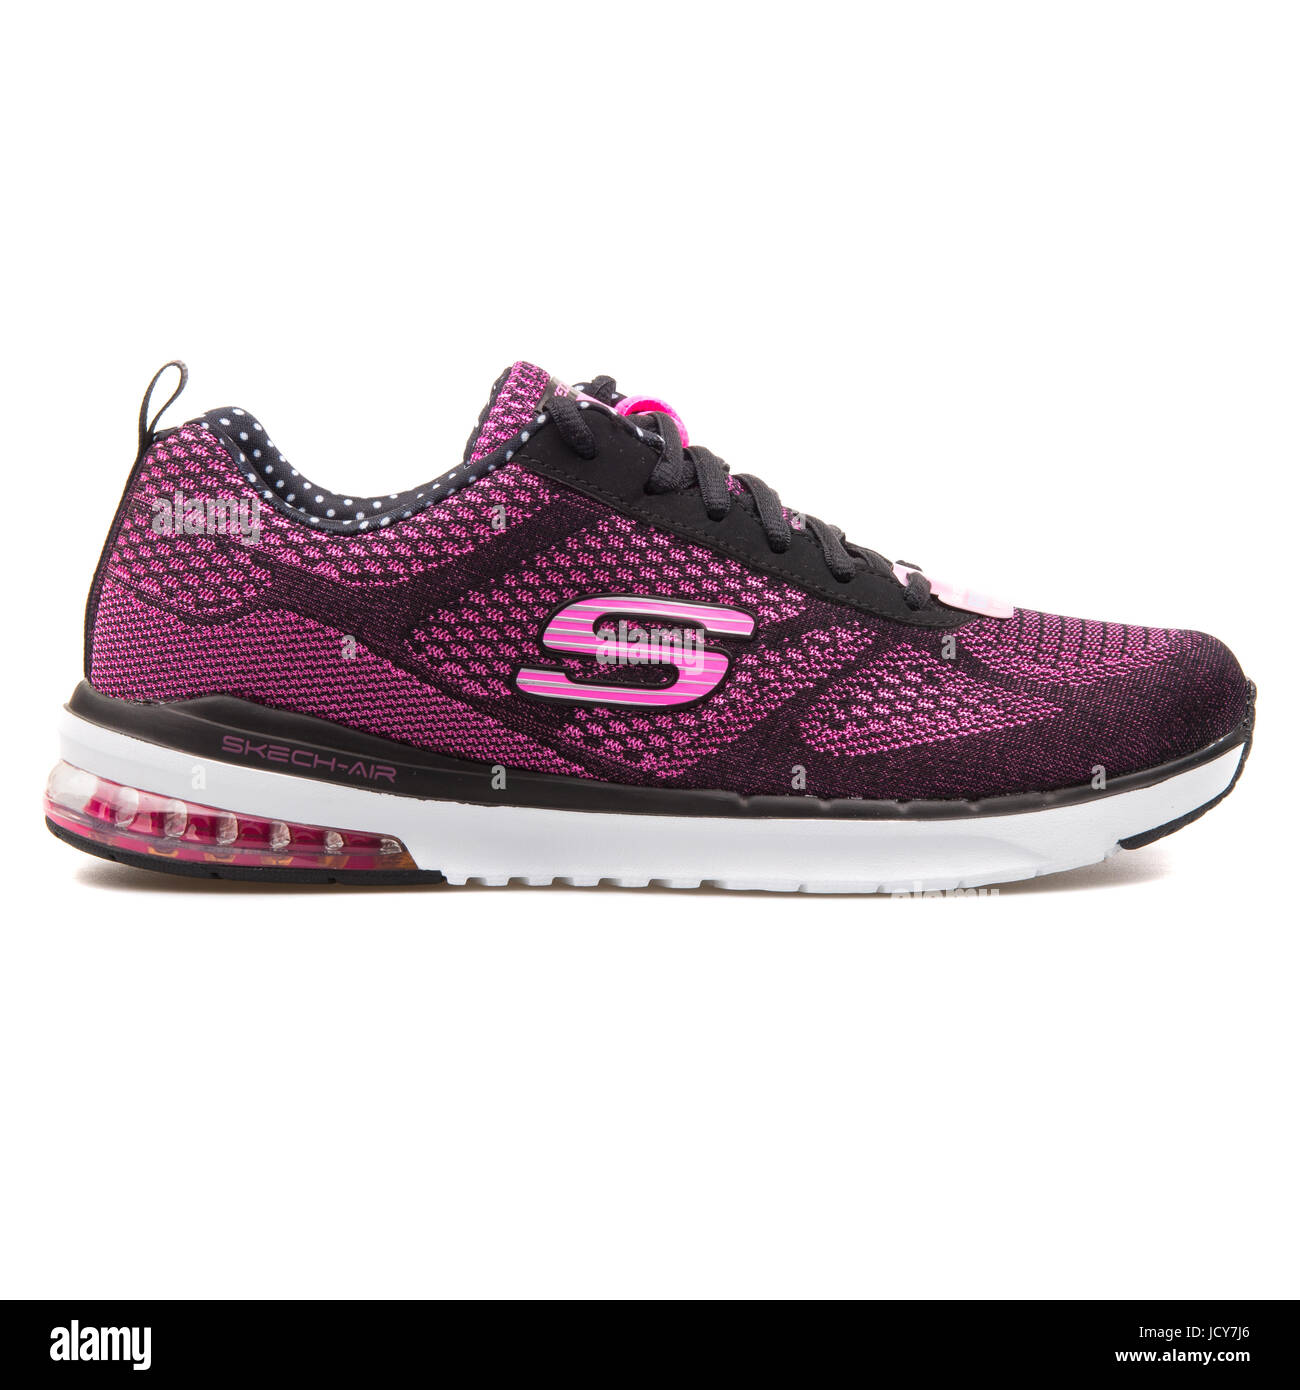 29c5f4db216 Skechers Skech-Air Infinity Black and Hot Pink Women's Running Shoes -  12111-BKHP